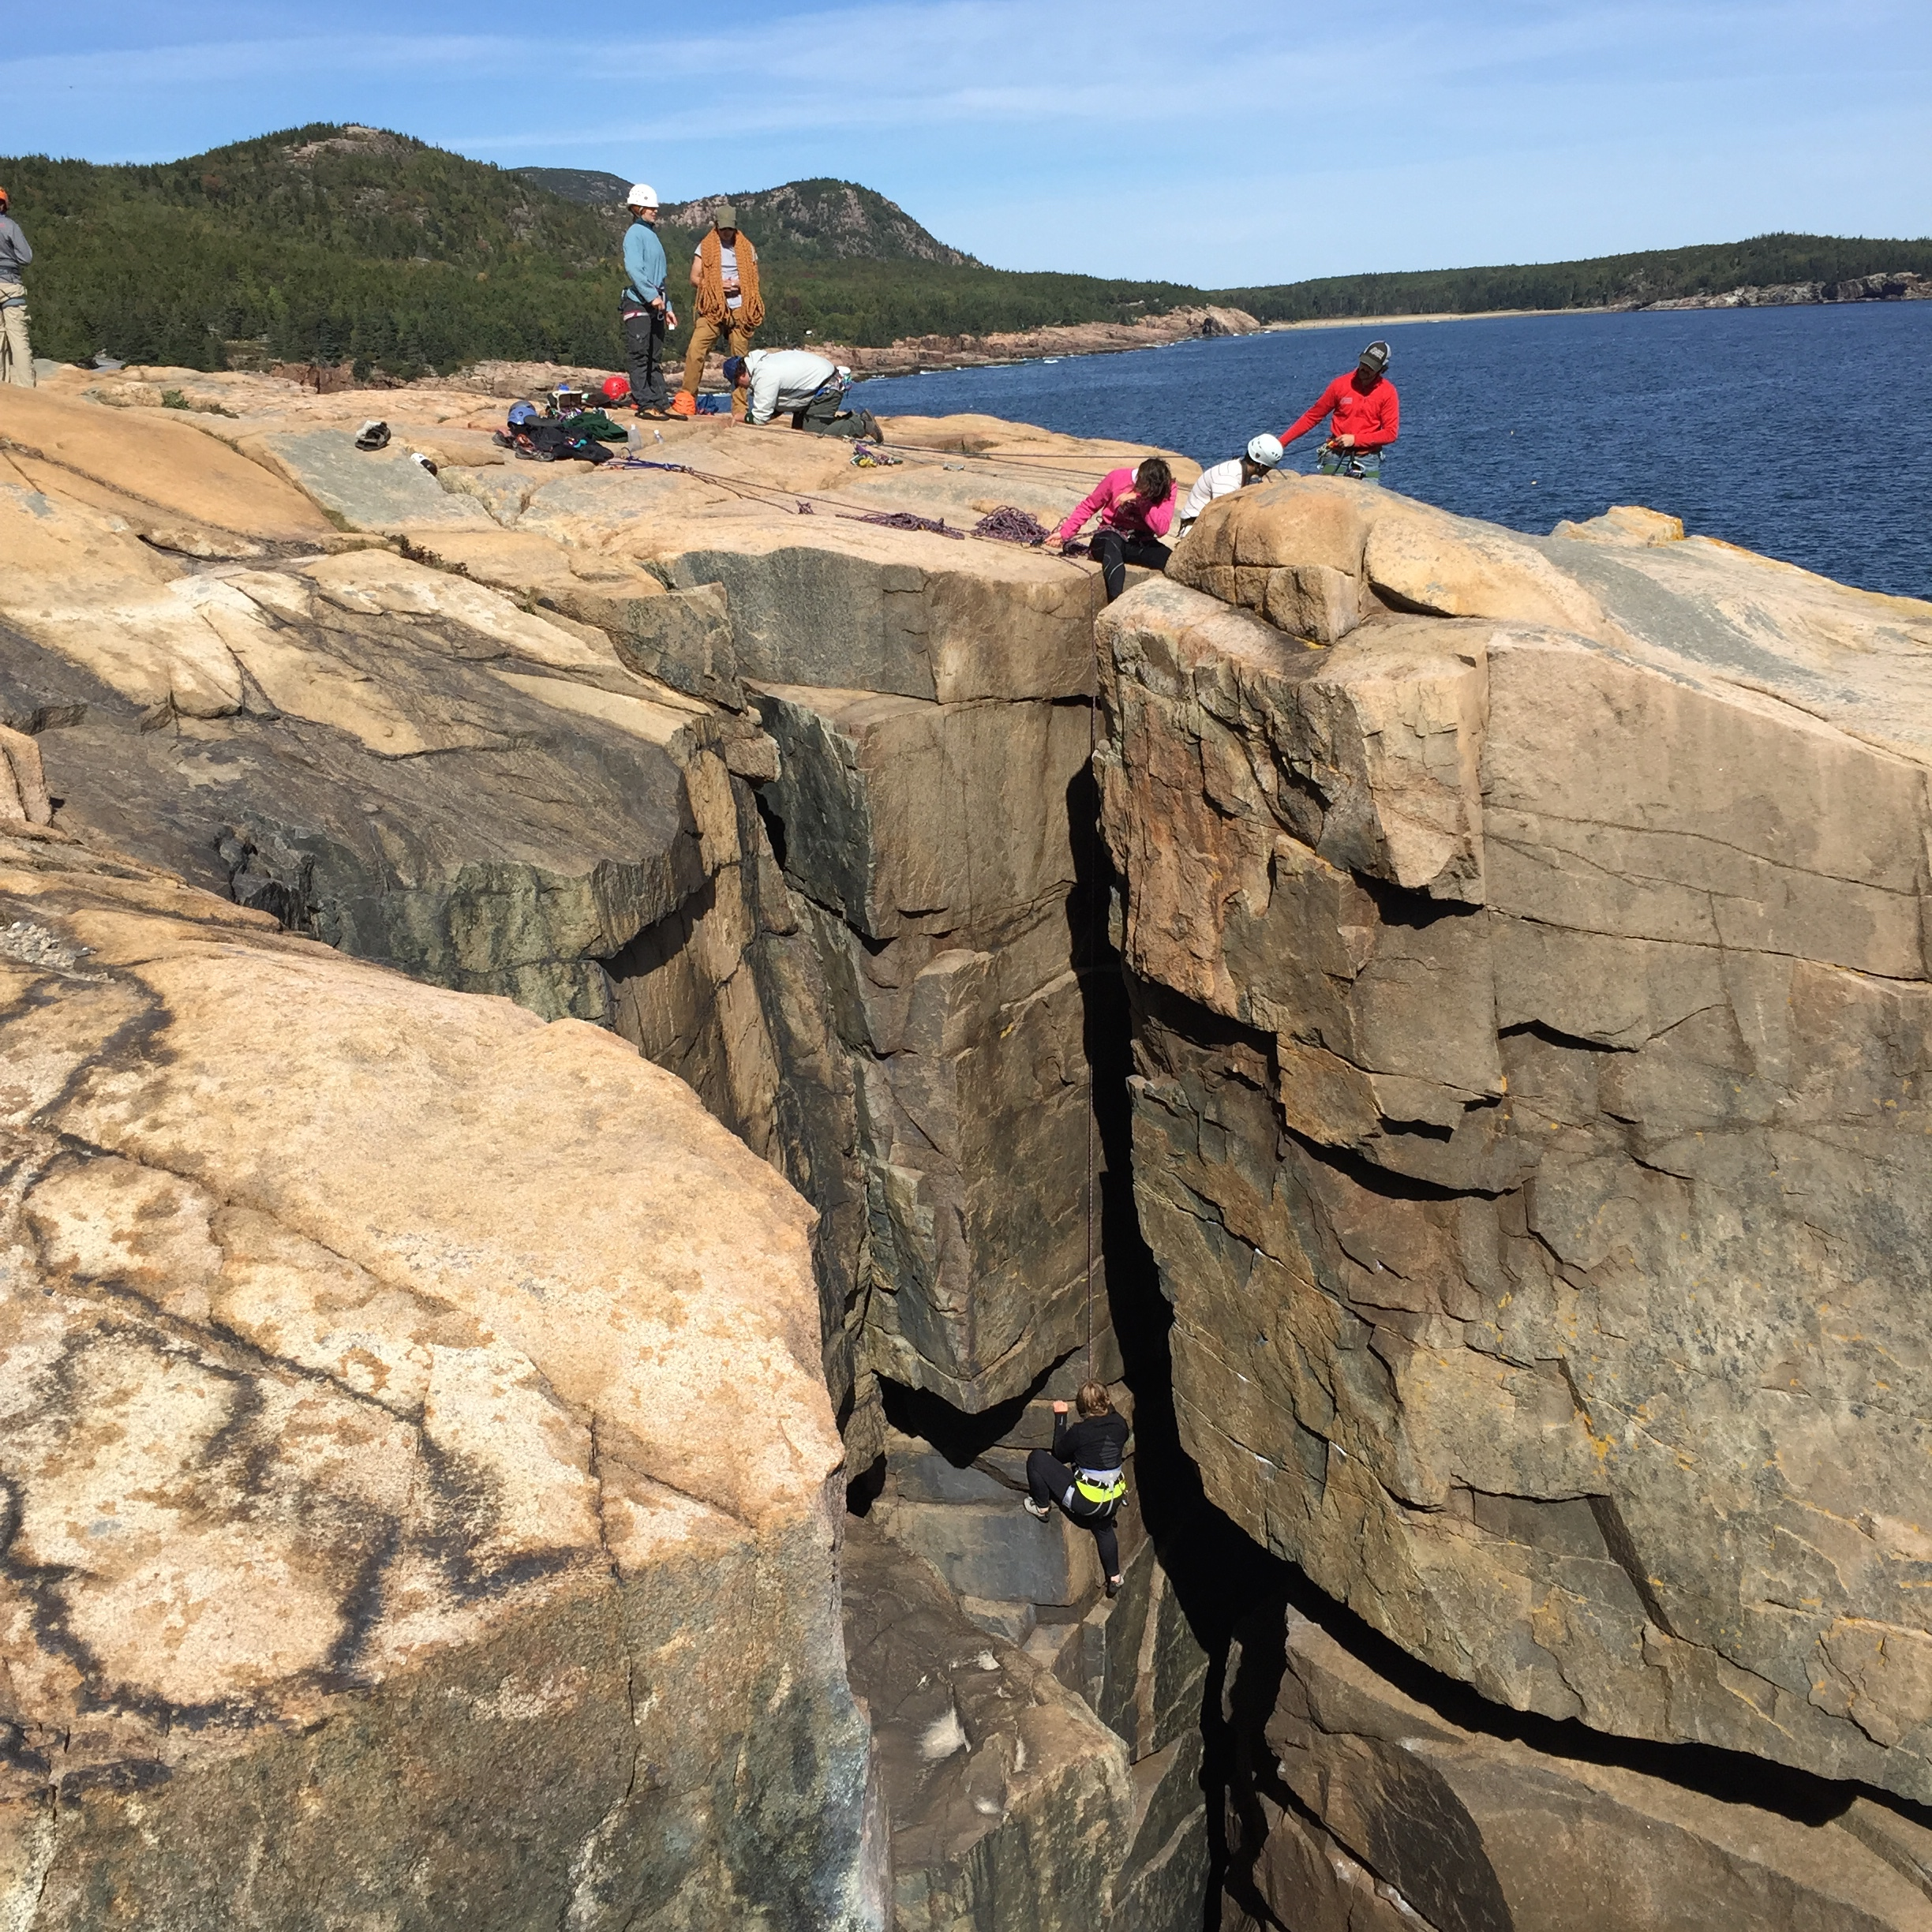 Otter Cliffs, Sand Beach, The Beehive and The Atlantic Ocean - this is Acadia National Park!